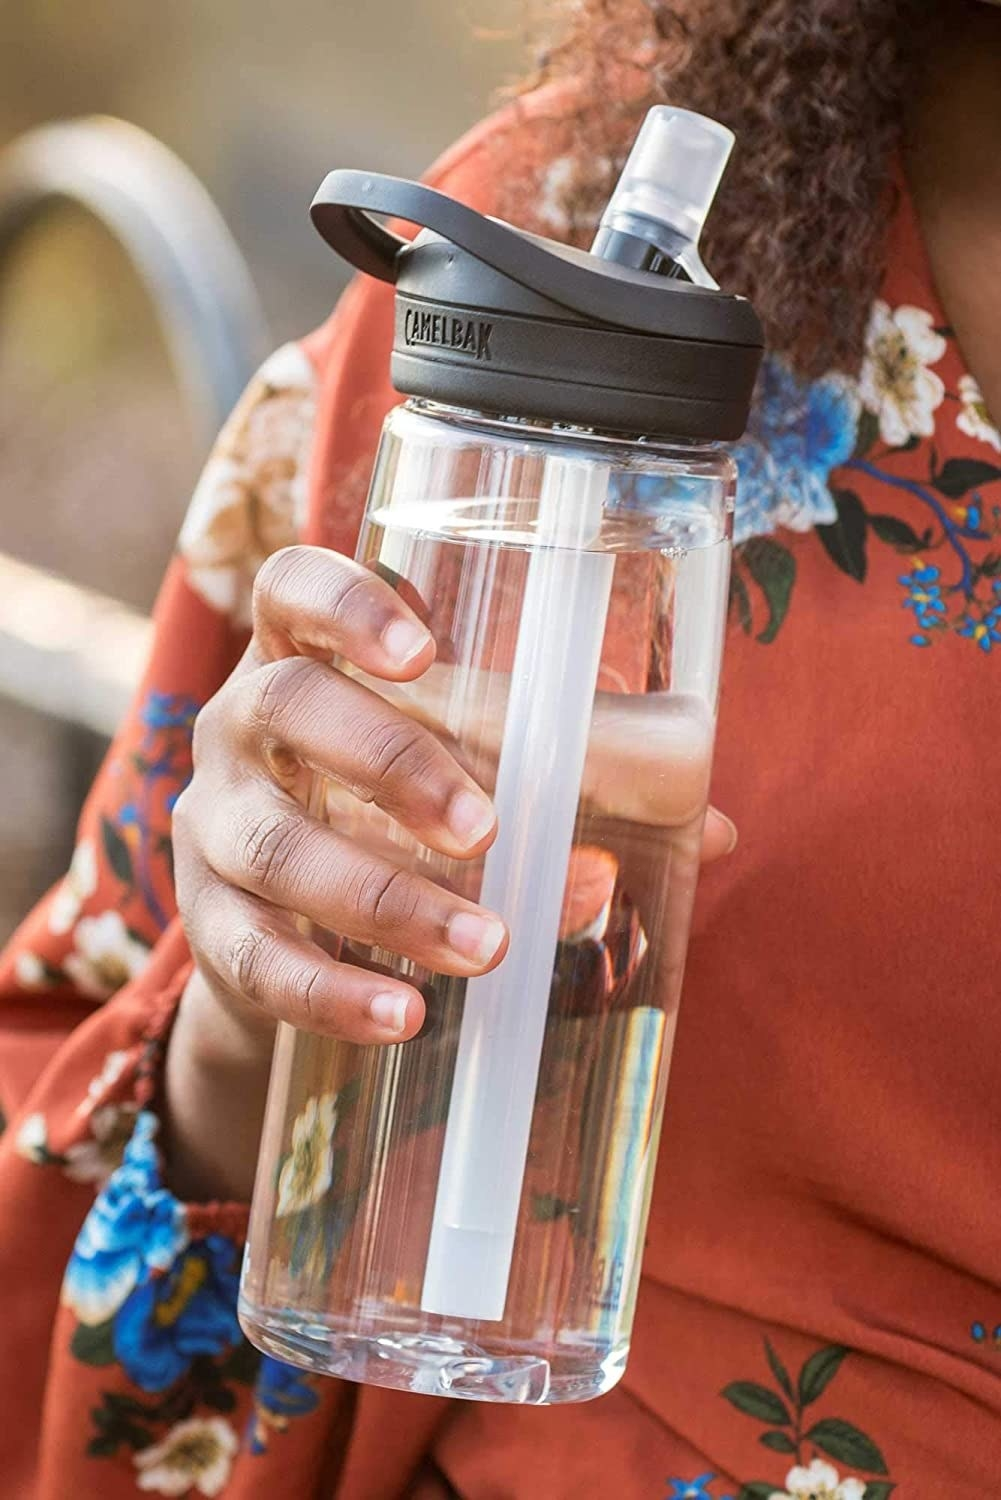 Product photo showing the CamelBak Eddy water bottle in clear with the bite-valve straw popped-up.